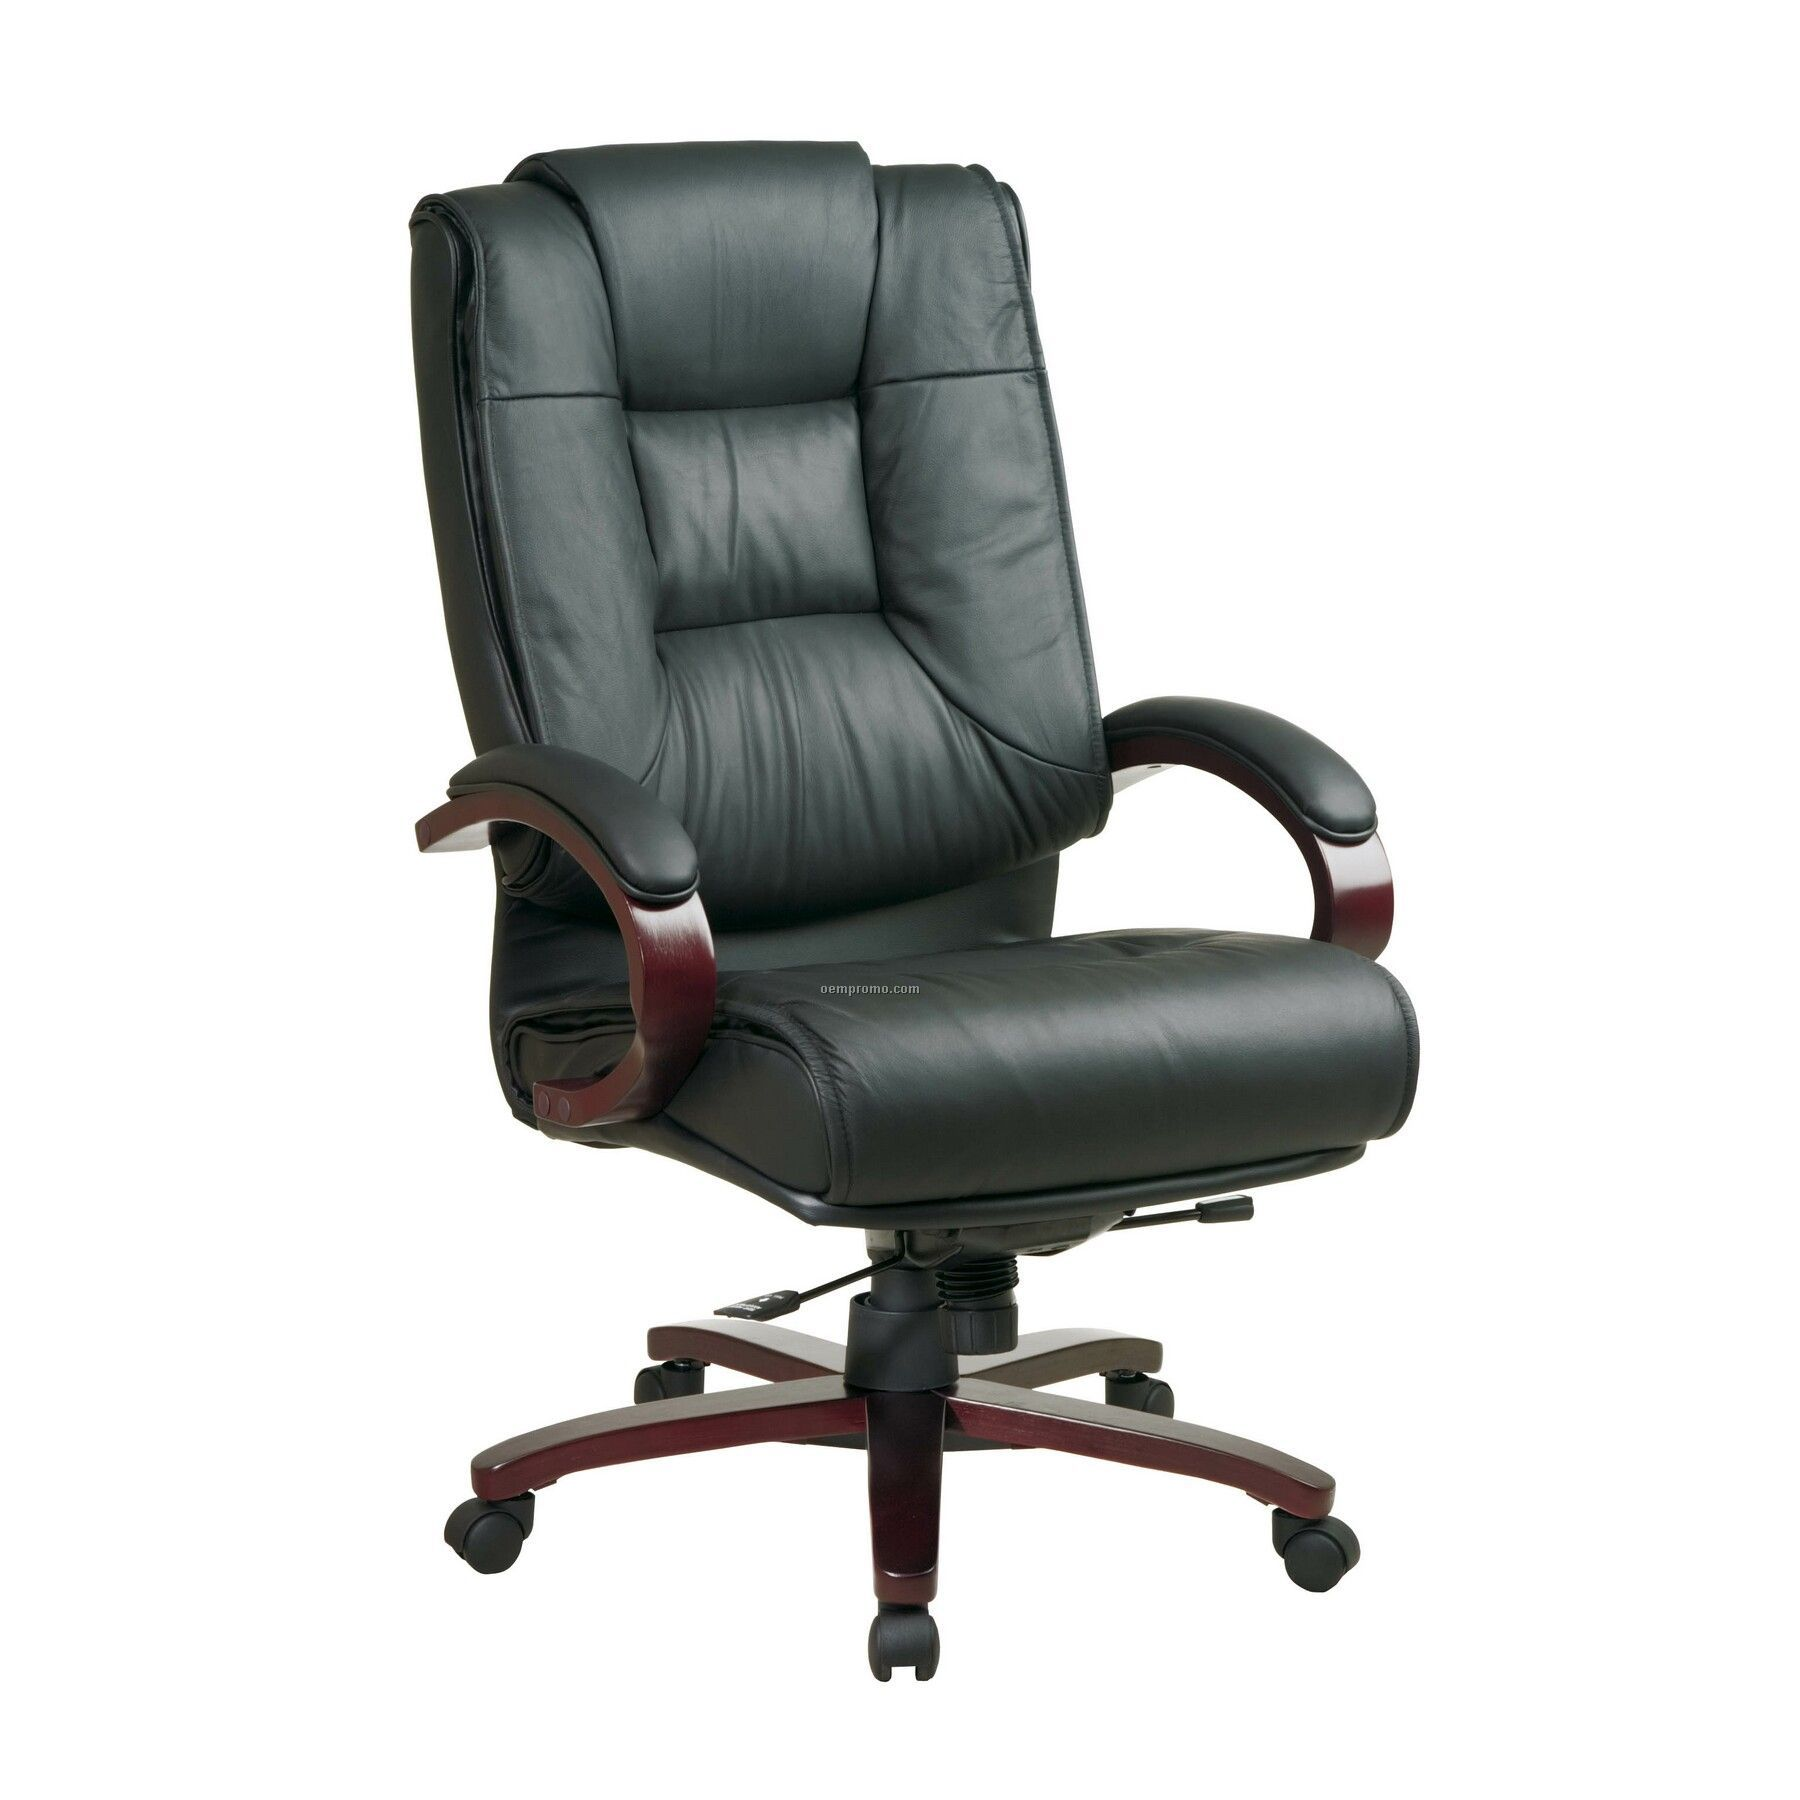 Office Leather Chairs Office Chairs Black Leather Office Chairs